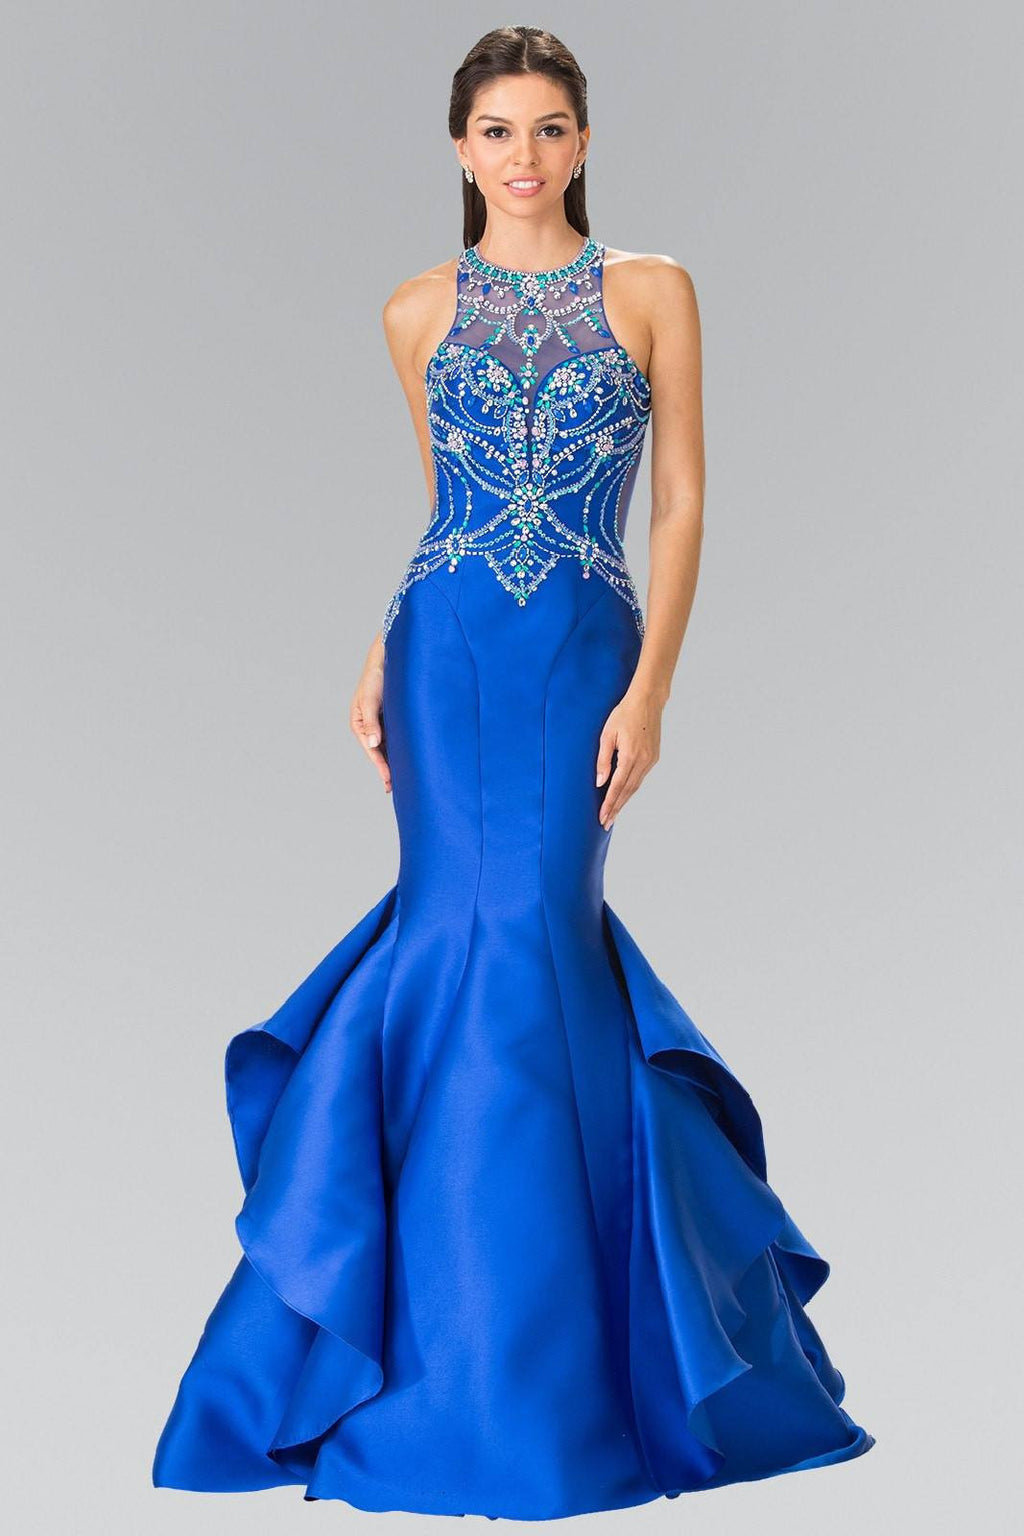 Cheap Glamorous sexy back Mermaid Prom dress #gl2357 - Simply Fab Dress